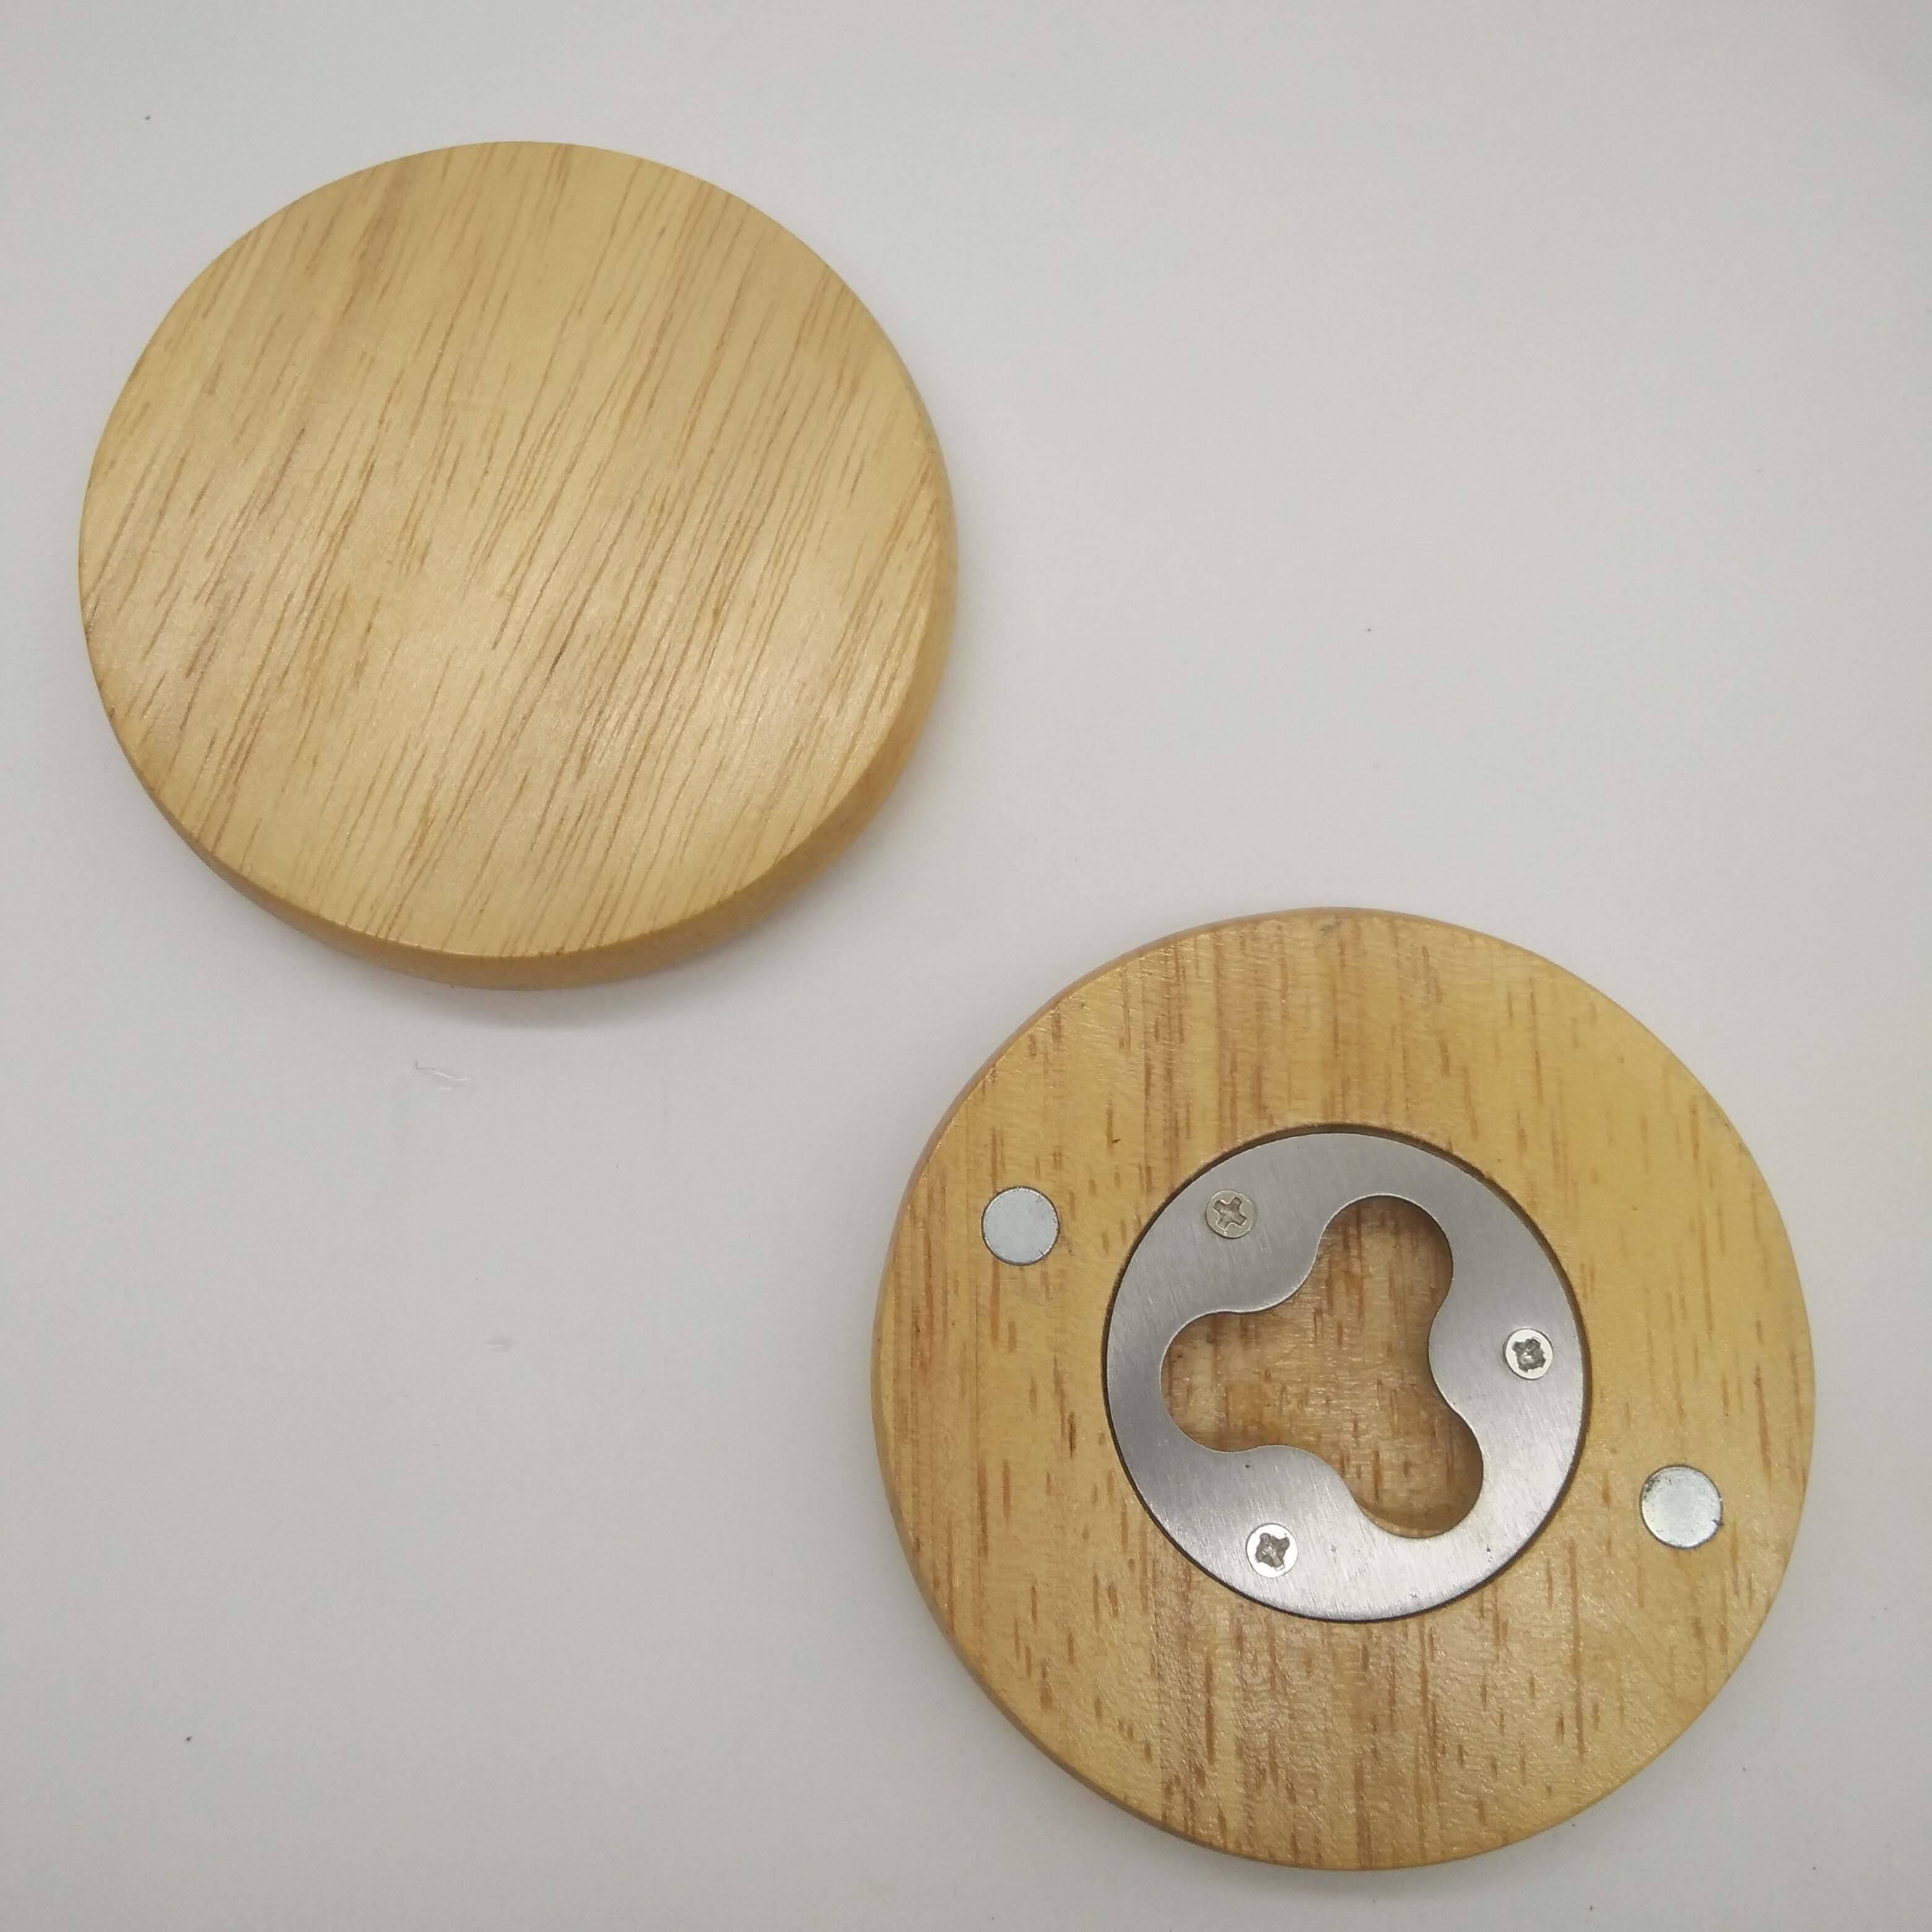 Stainless Steel Magnetic Round Coaster Wooden Beer Bottle Opener